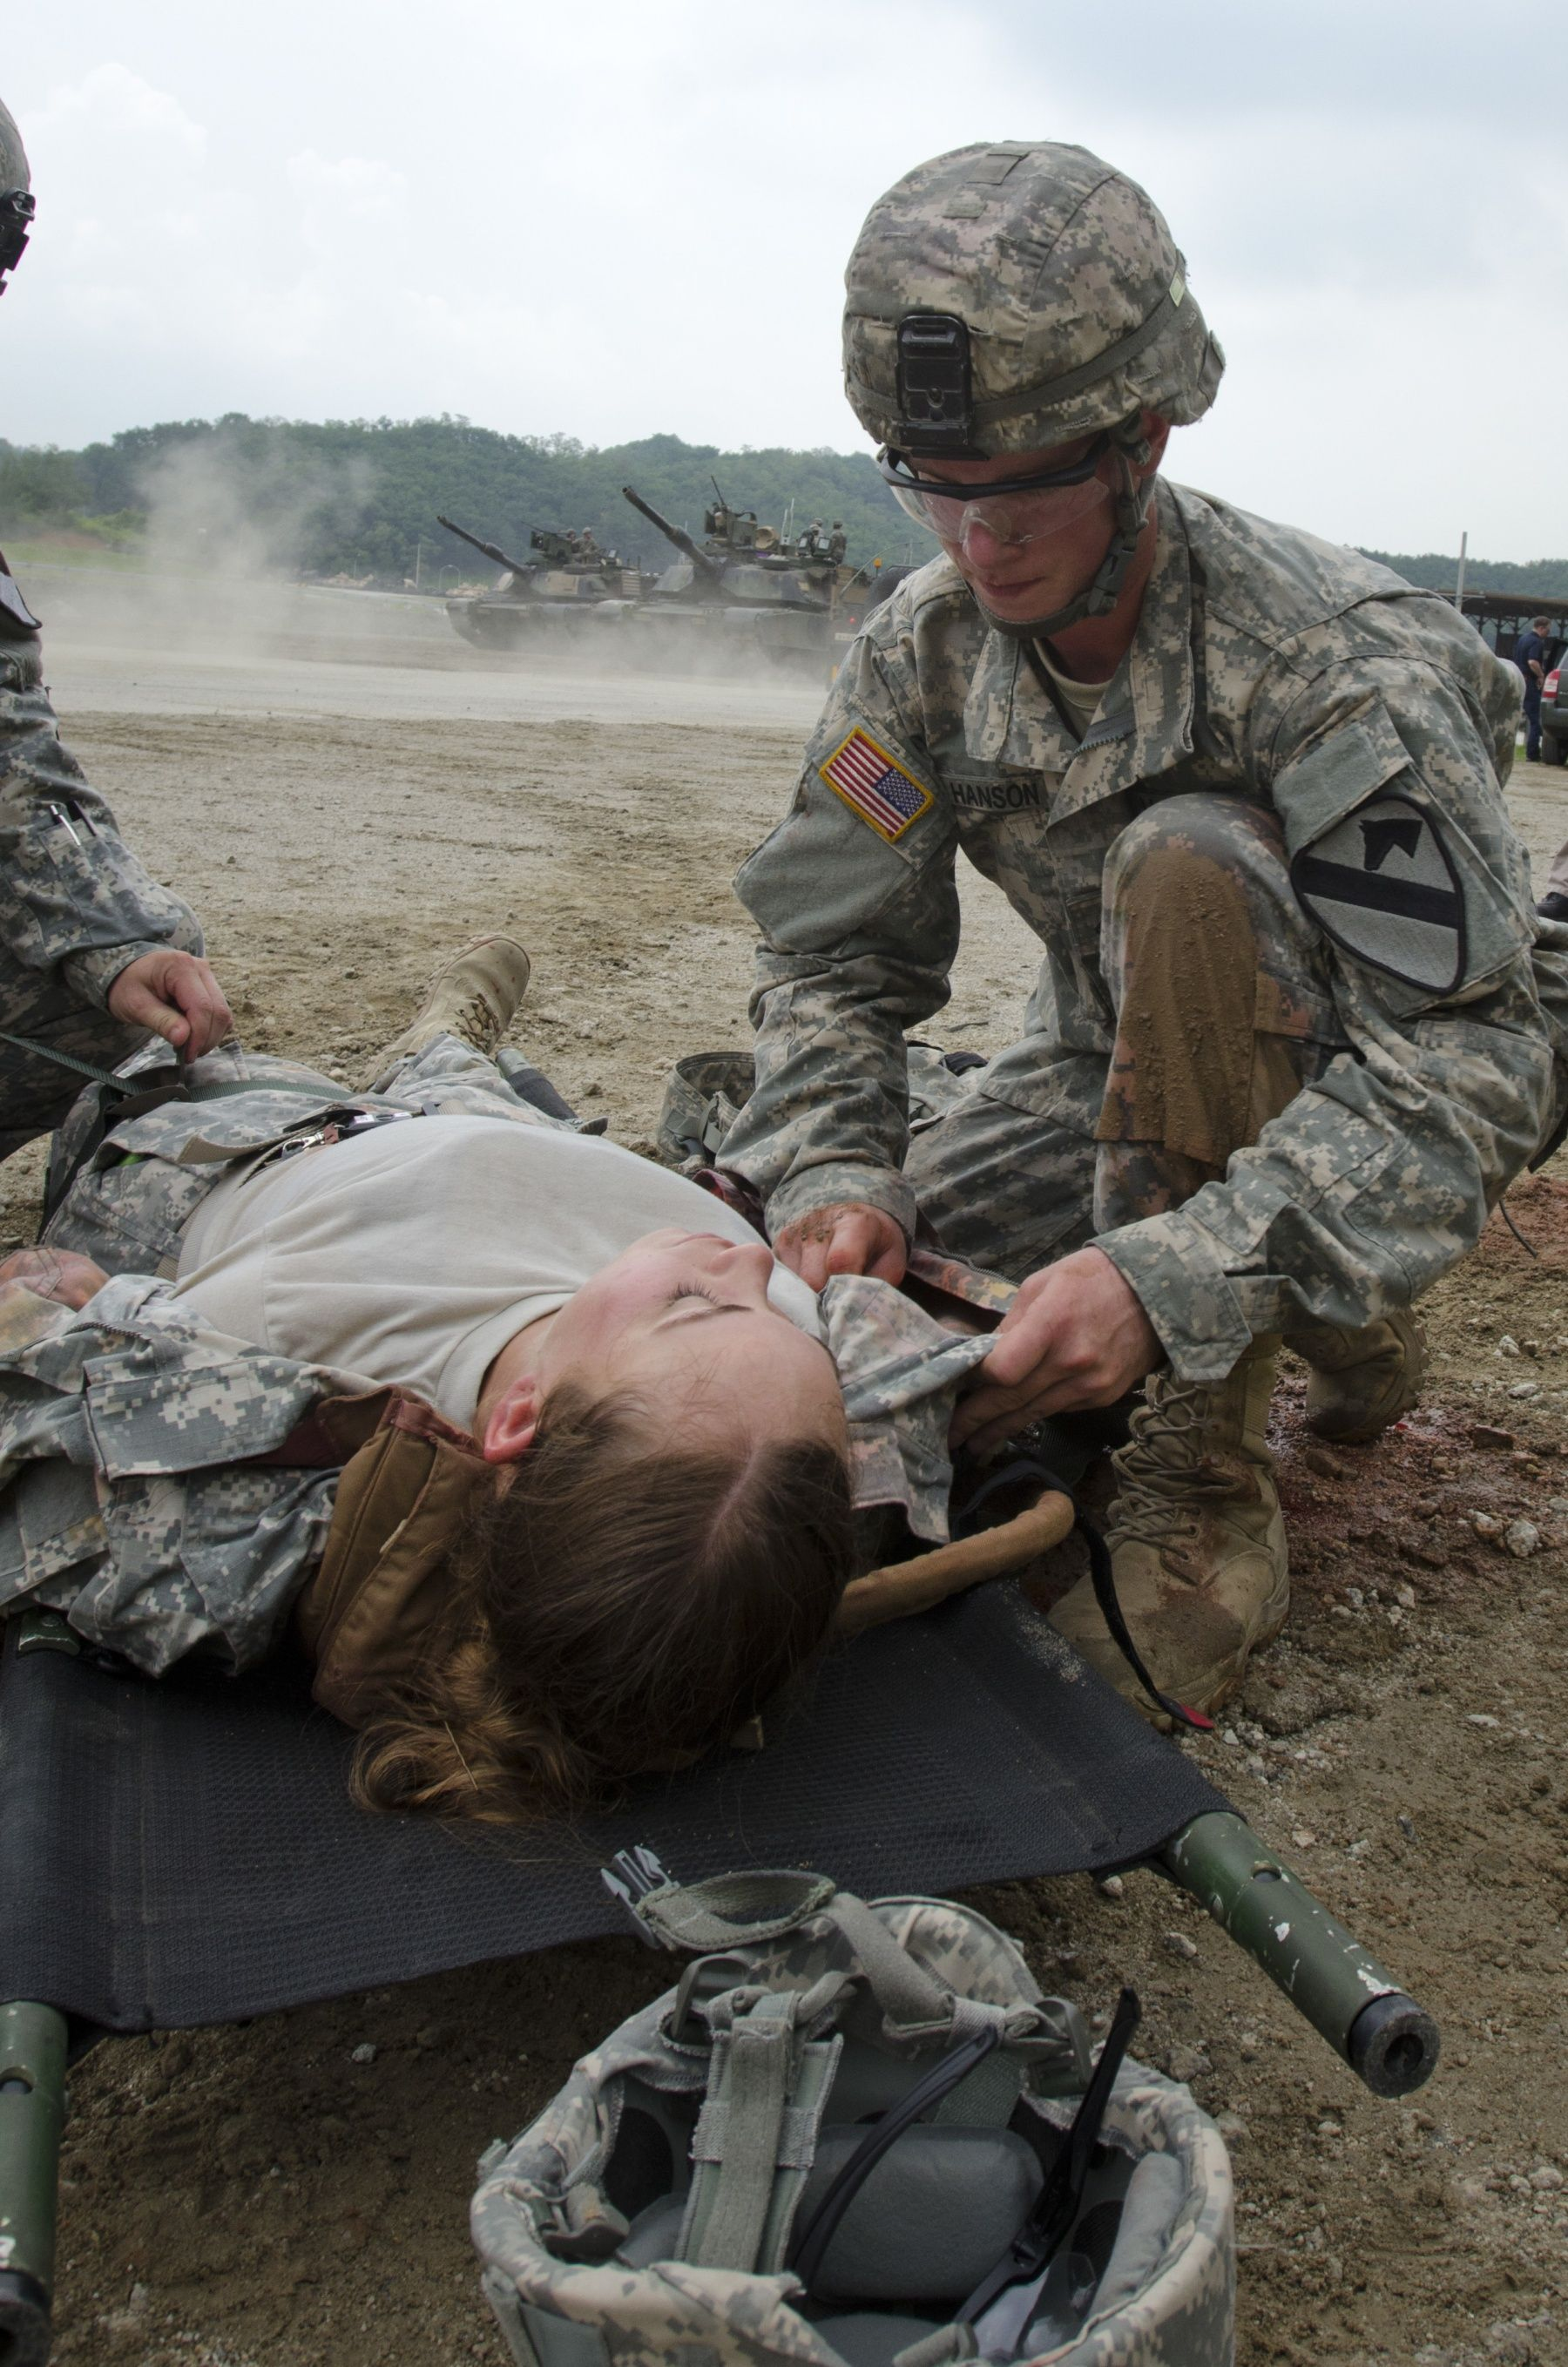 Combat medics train as they fight | Article | The United States ...